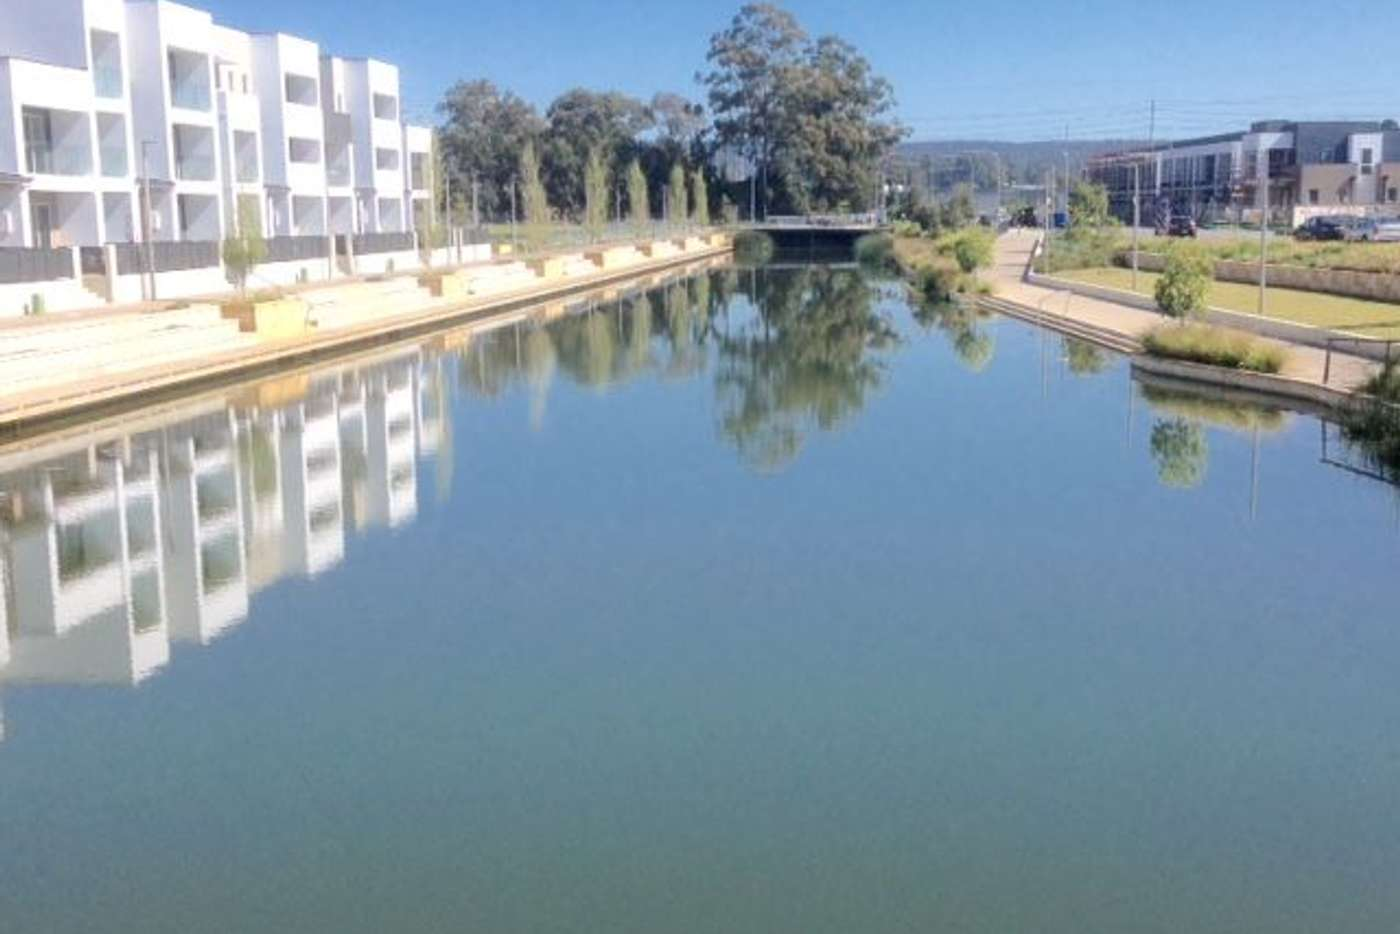 Main view of Homely apartment listing, 43 Fernandez Lane, Penrith NSW 2750